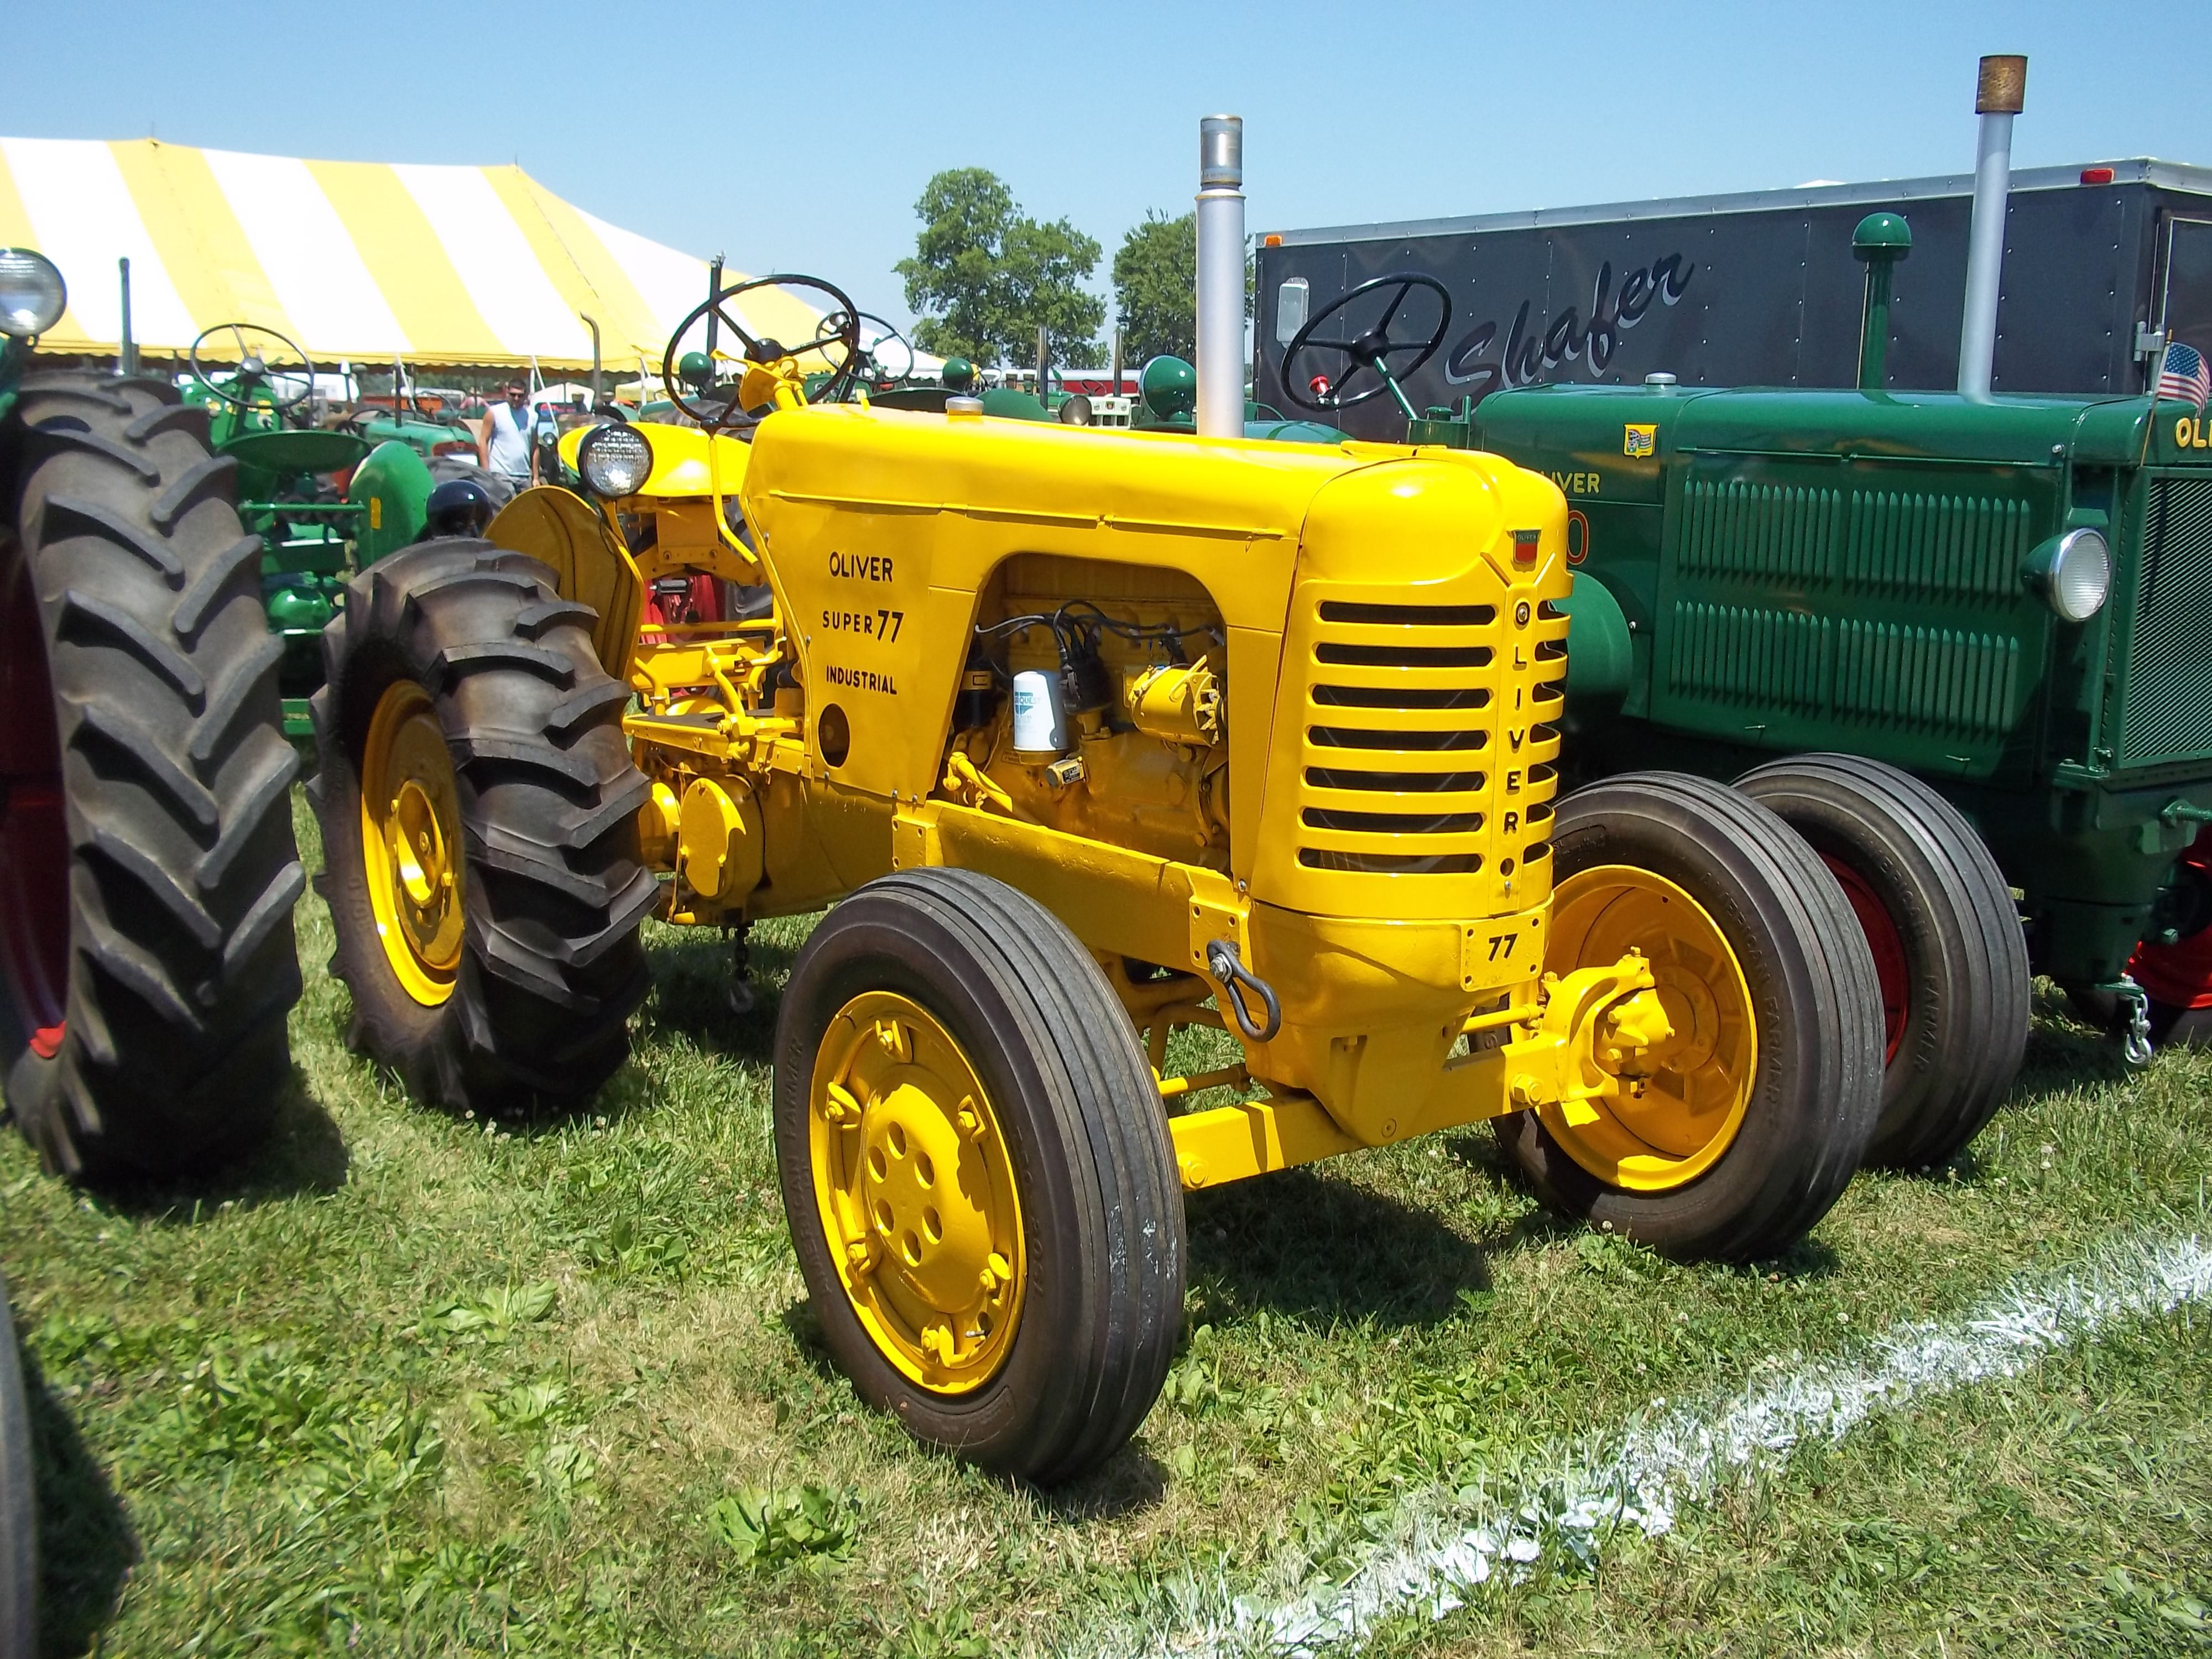 66,77 or 88 Industrial Tractors, Tractor Pulling